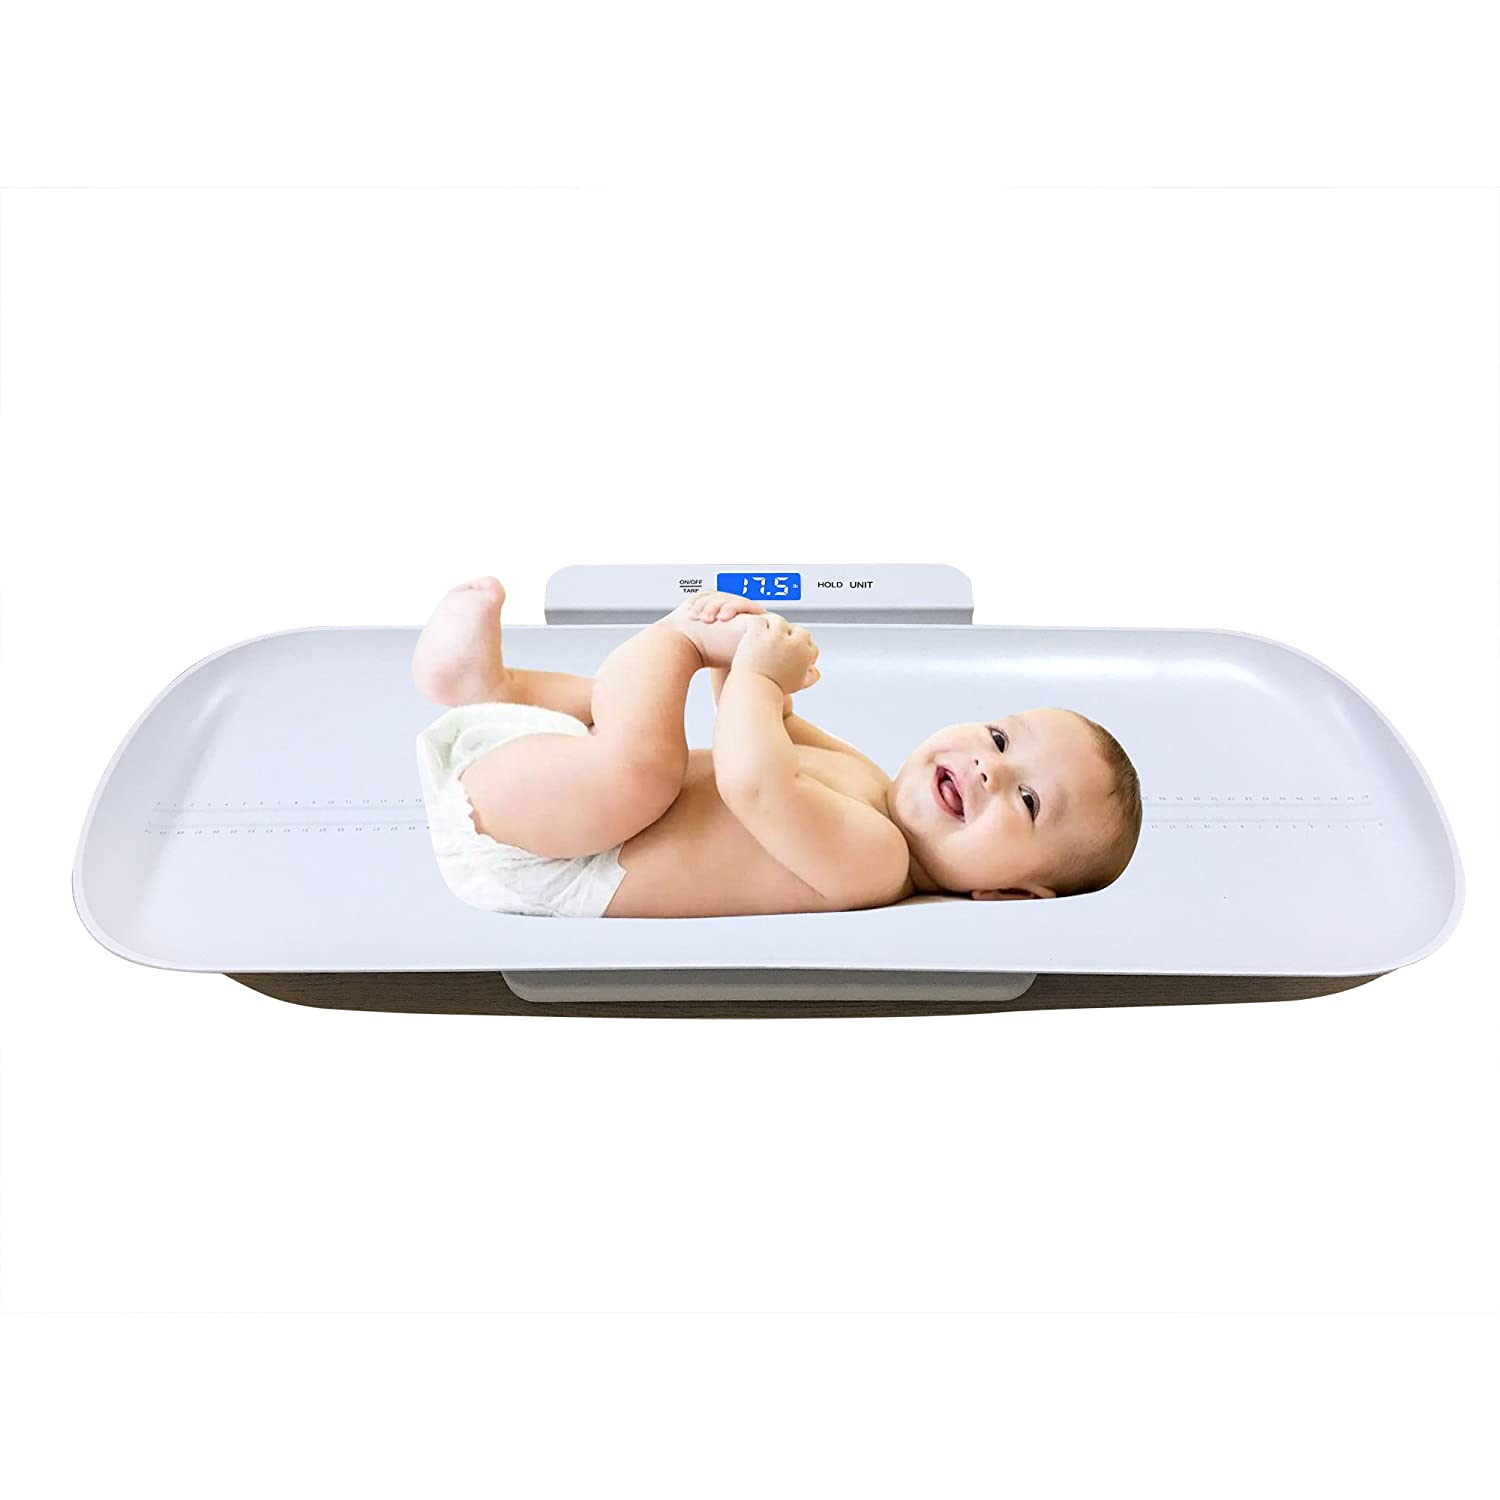 Multi-Function Digital Baby Scale Measure Infant / Baby / Adult Weight Accurately, 220 Pound (lbs) Capacity with Precision 10g, Blue Backlight, Kg/oz/lb available (White, 70cm) iSnow-Med